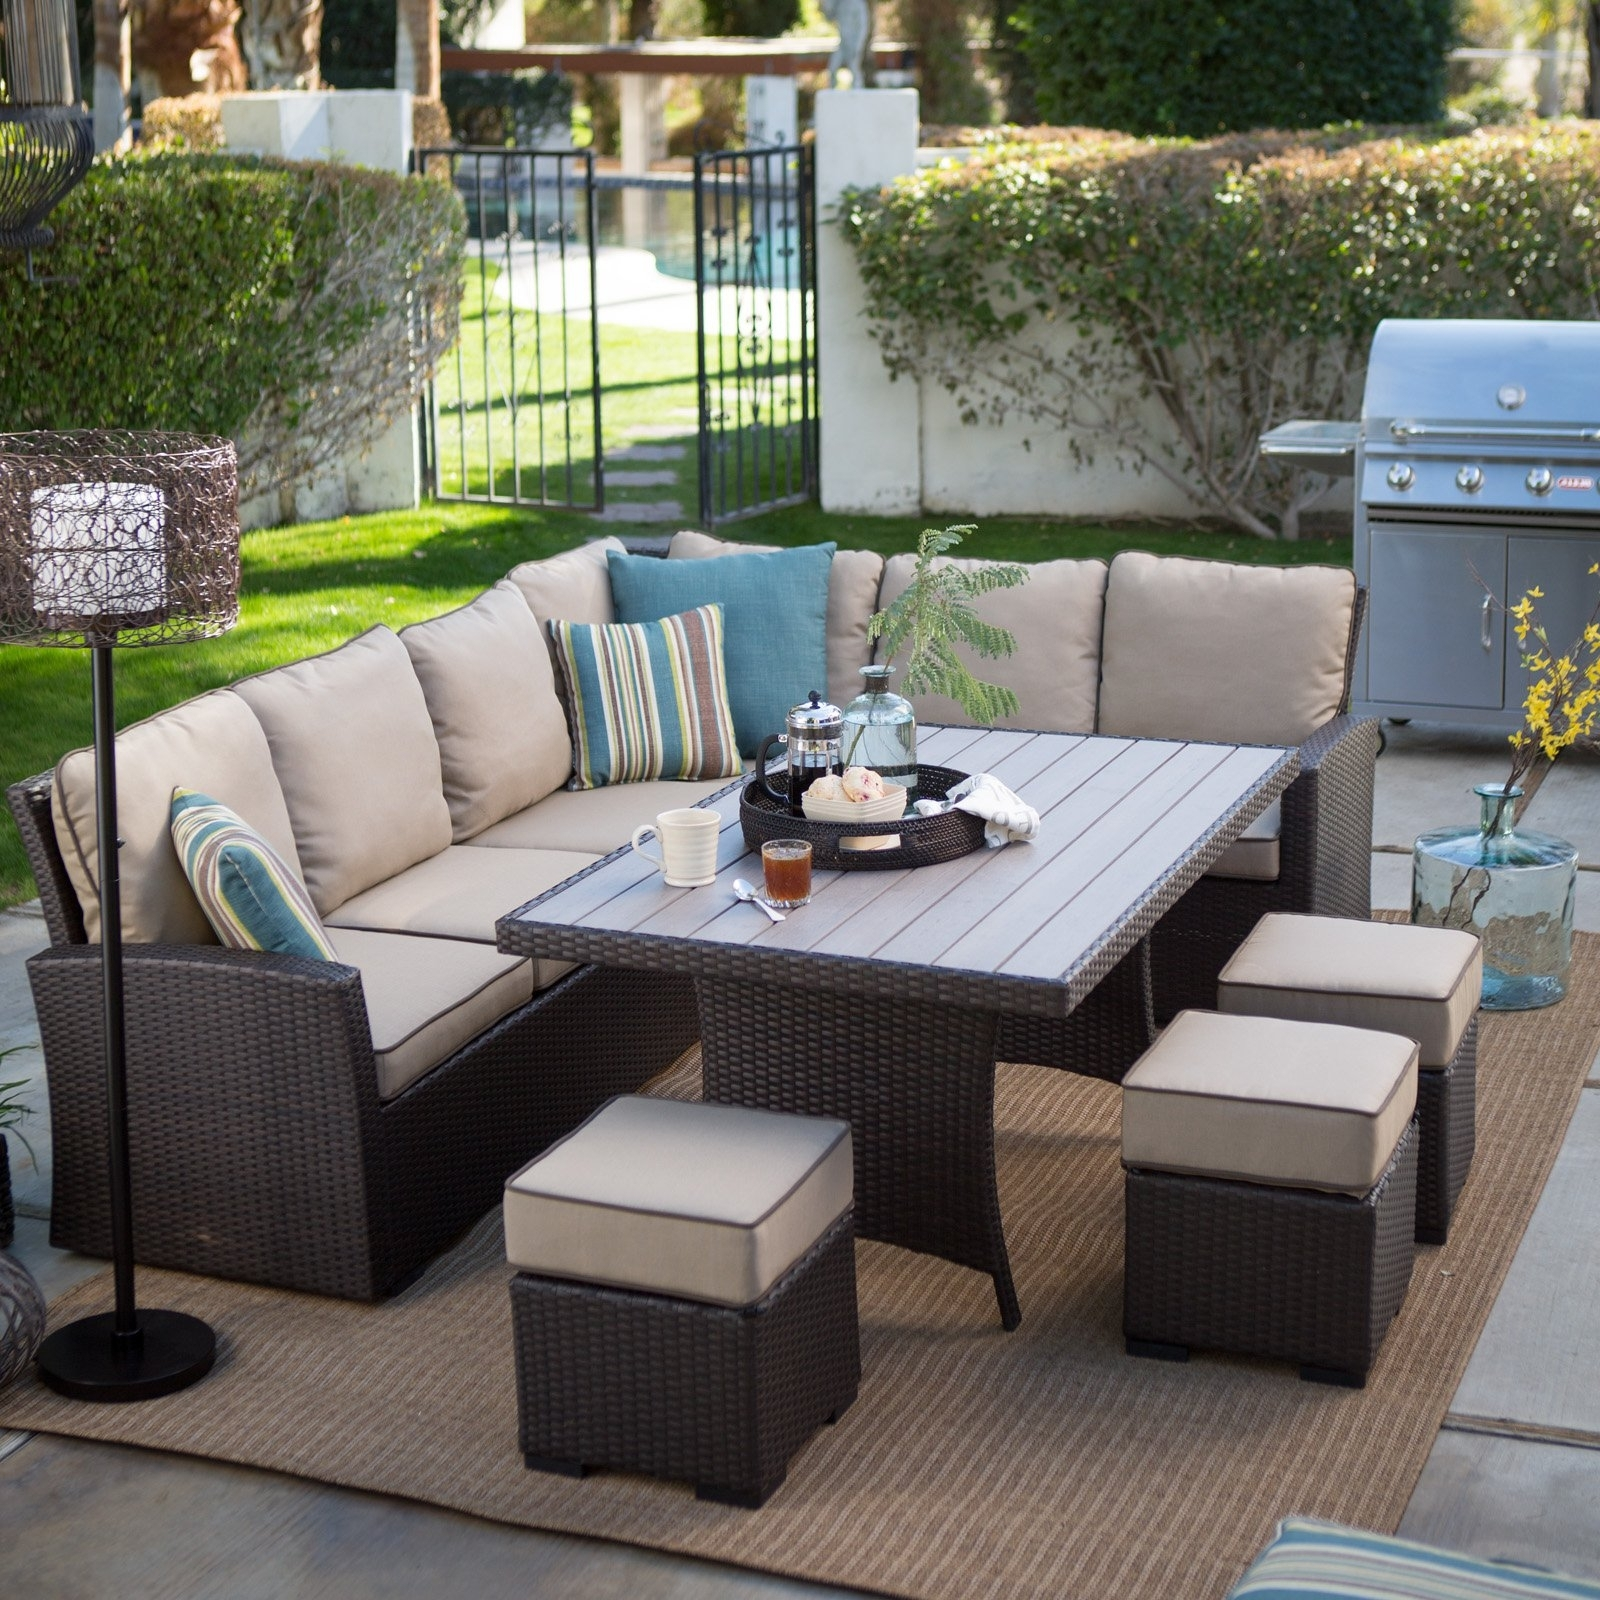 Outdoor Patio Furniture Conversation Sets Within Current Patio Living Room Sets – Kemist.orbitalshow (View 15 of 20)